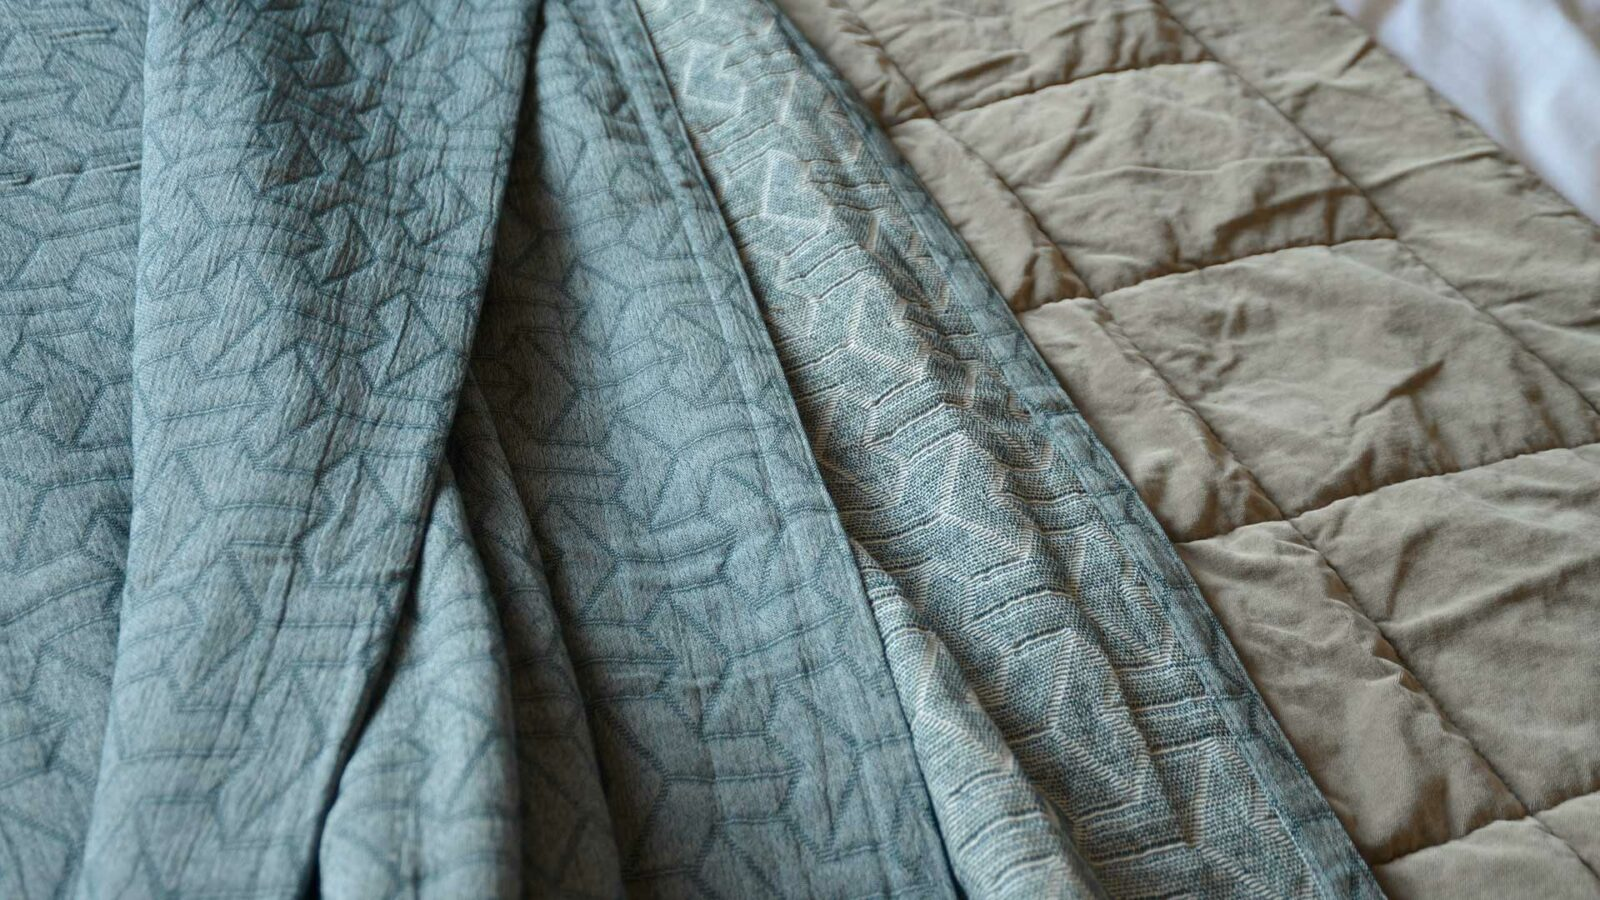 Petrol blue recycled cotton bedspread with stitched pattern